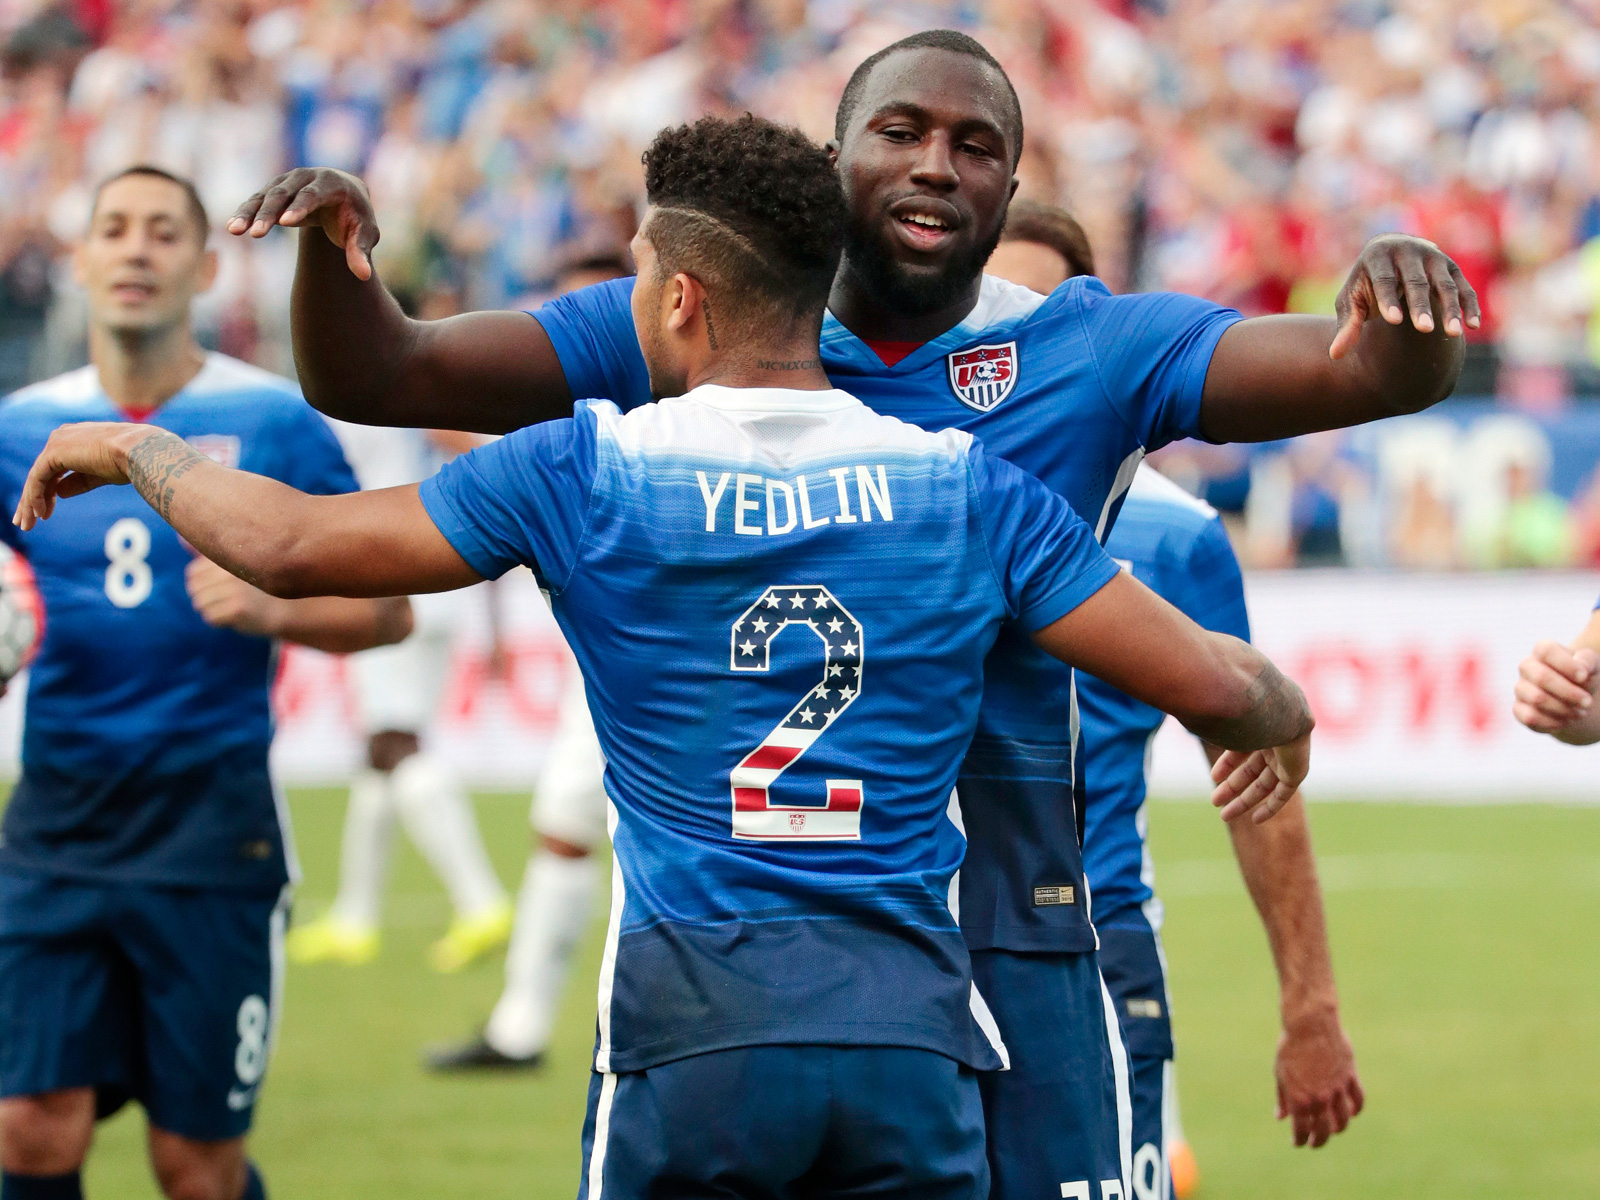 DeAndre Yedlin and Jozy Altidore, wearing special jerseys with stars-and-stripes numbers for July 4, celebrate after a Guatemala own goal gifts the USA a 1-0 lead during a 4-0 win in Nashville, Tennessee, prior to the CONCACAF Gold Cup.